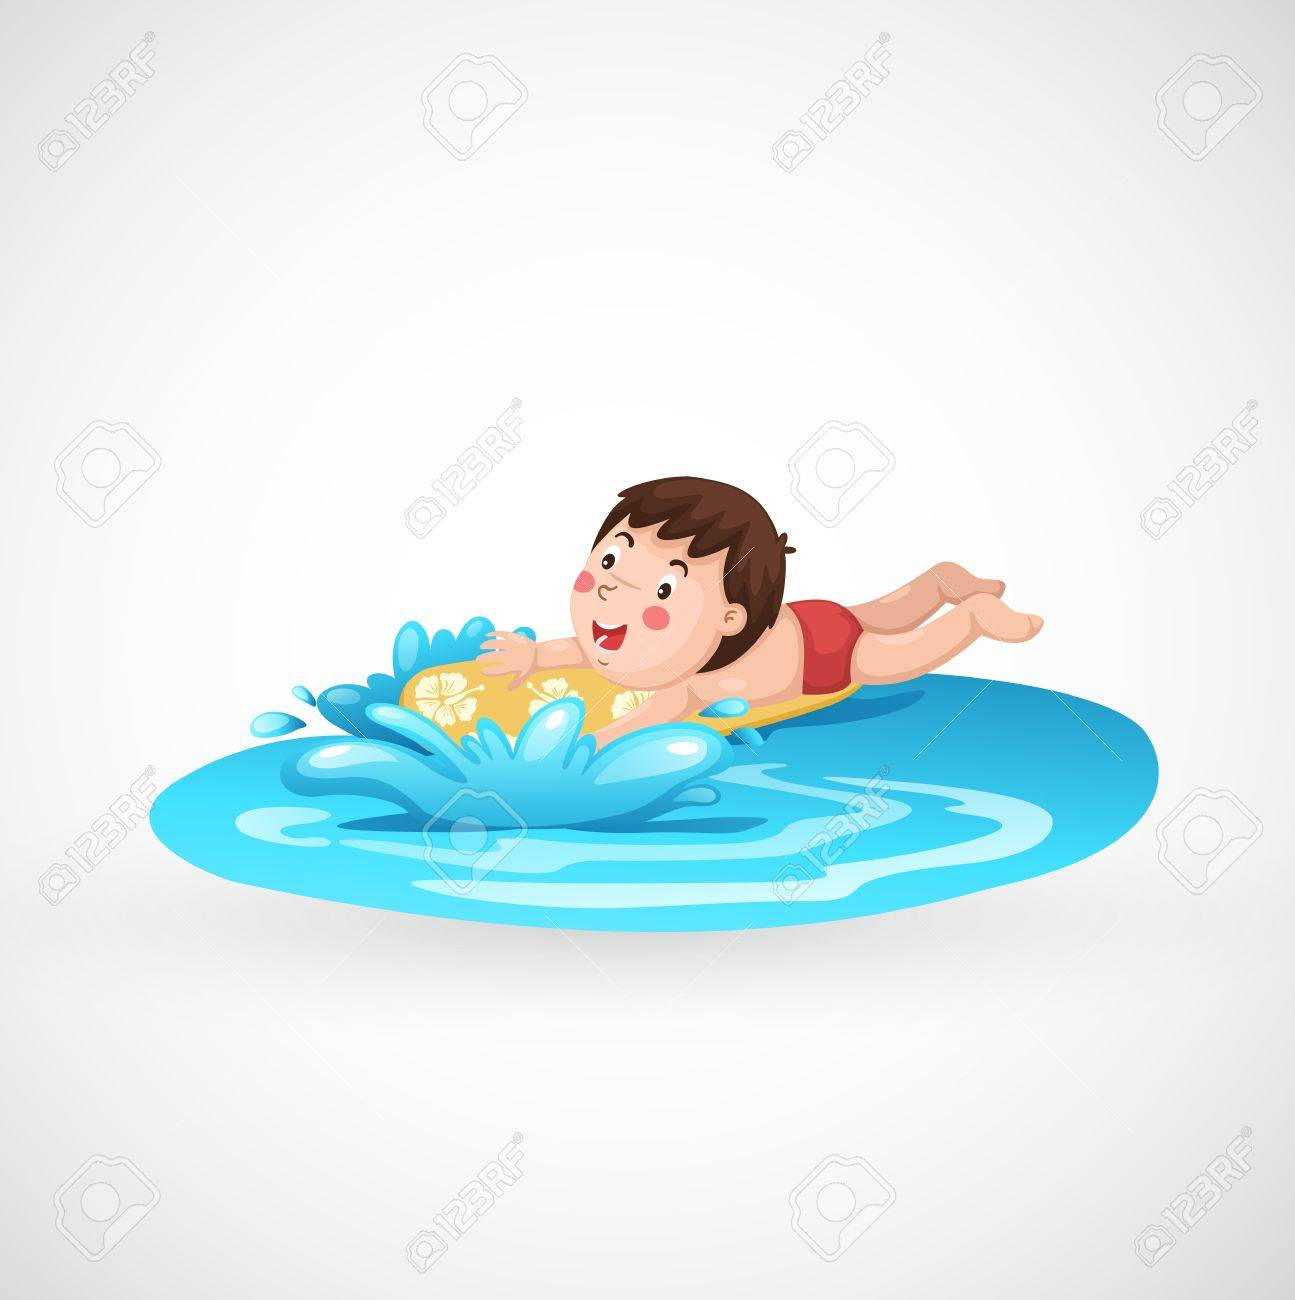 Clipart boy pool, Clipart boy pool Transparent FREE for download on  WebStockReview 2020